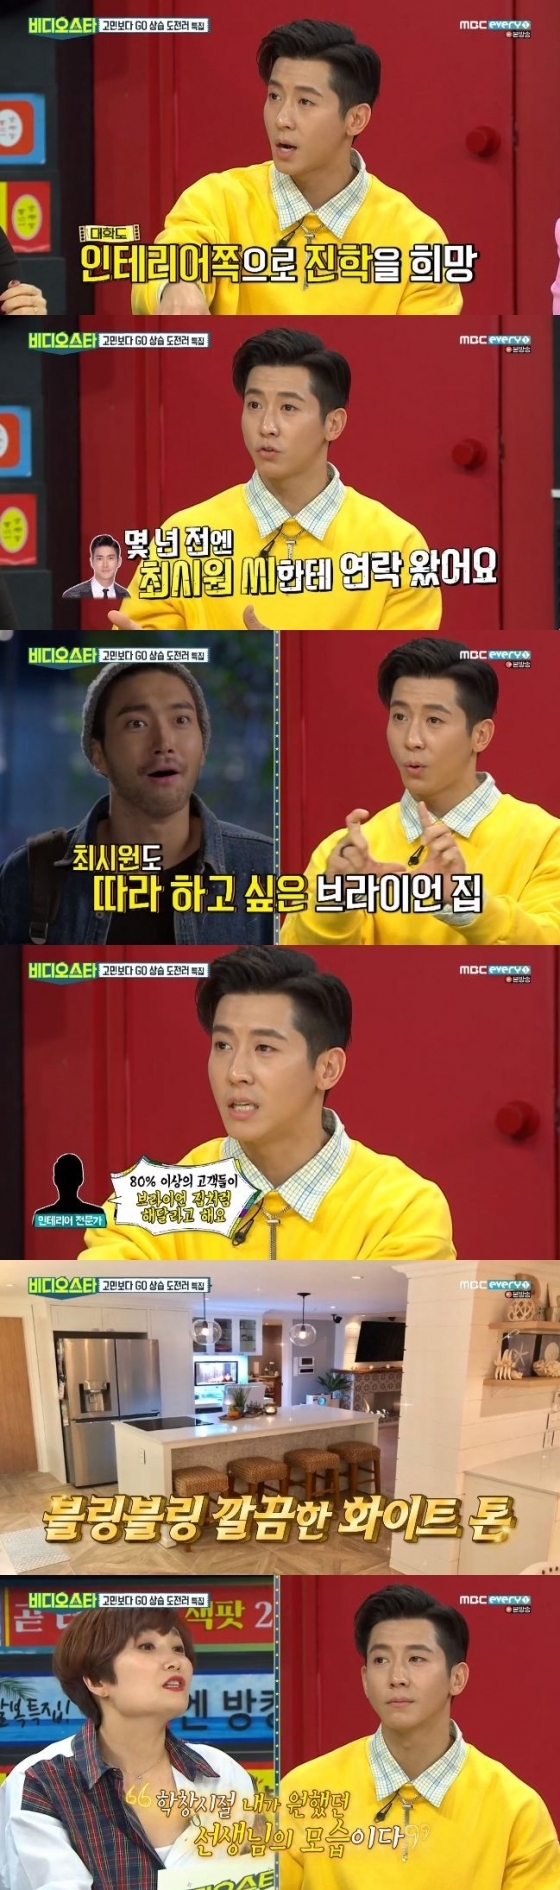 <p>18 days afternoon broadcast MBC live support for video starin our landscape, night, we, Brian Joo, Kim Young Hee, Kim Dong also appeared as a guest.</p><p>This day Brian Joo is from childhood Interiors designers was a dream, and the house directly to the mods. He said: celebrities also me, version and. How long ago that Super Junior Choi Siwon  Mr. phone and in our home I want to do, and,he said. Or Brian Joo recently Interiors in the industry, more than 80% customers their own house like that one said.</p><p>Brian Joo recently, the Flower class is also being revealed. He said: the lesson is, in school one of the best teacher of all.he said. Then the MC box down allow me,he said to laughter, I found myself.</p>